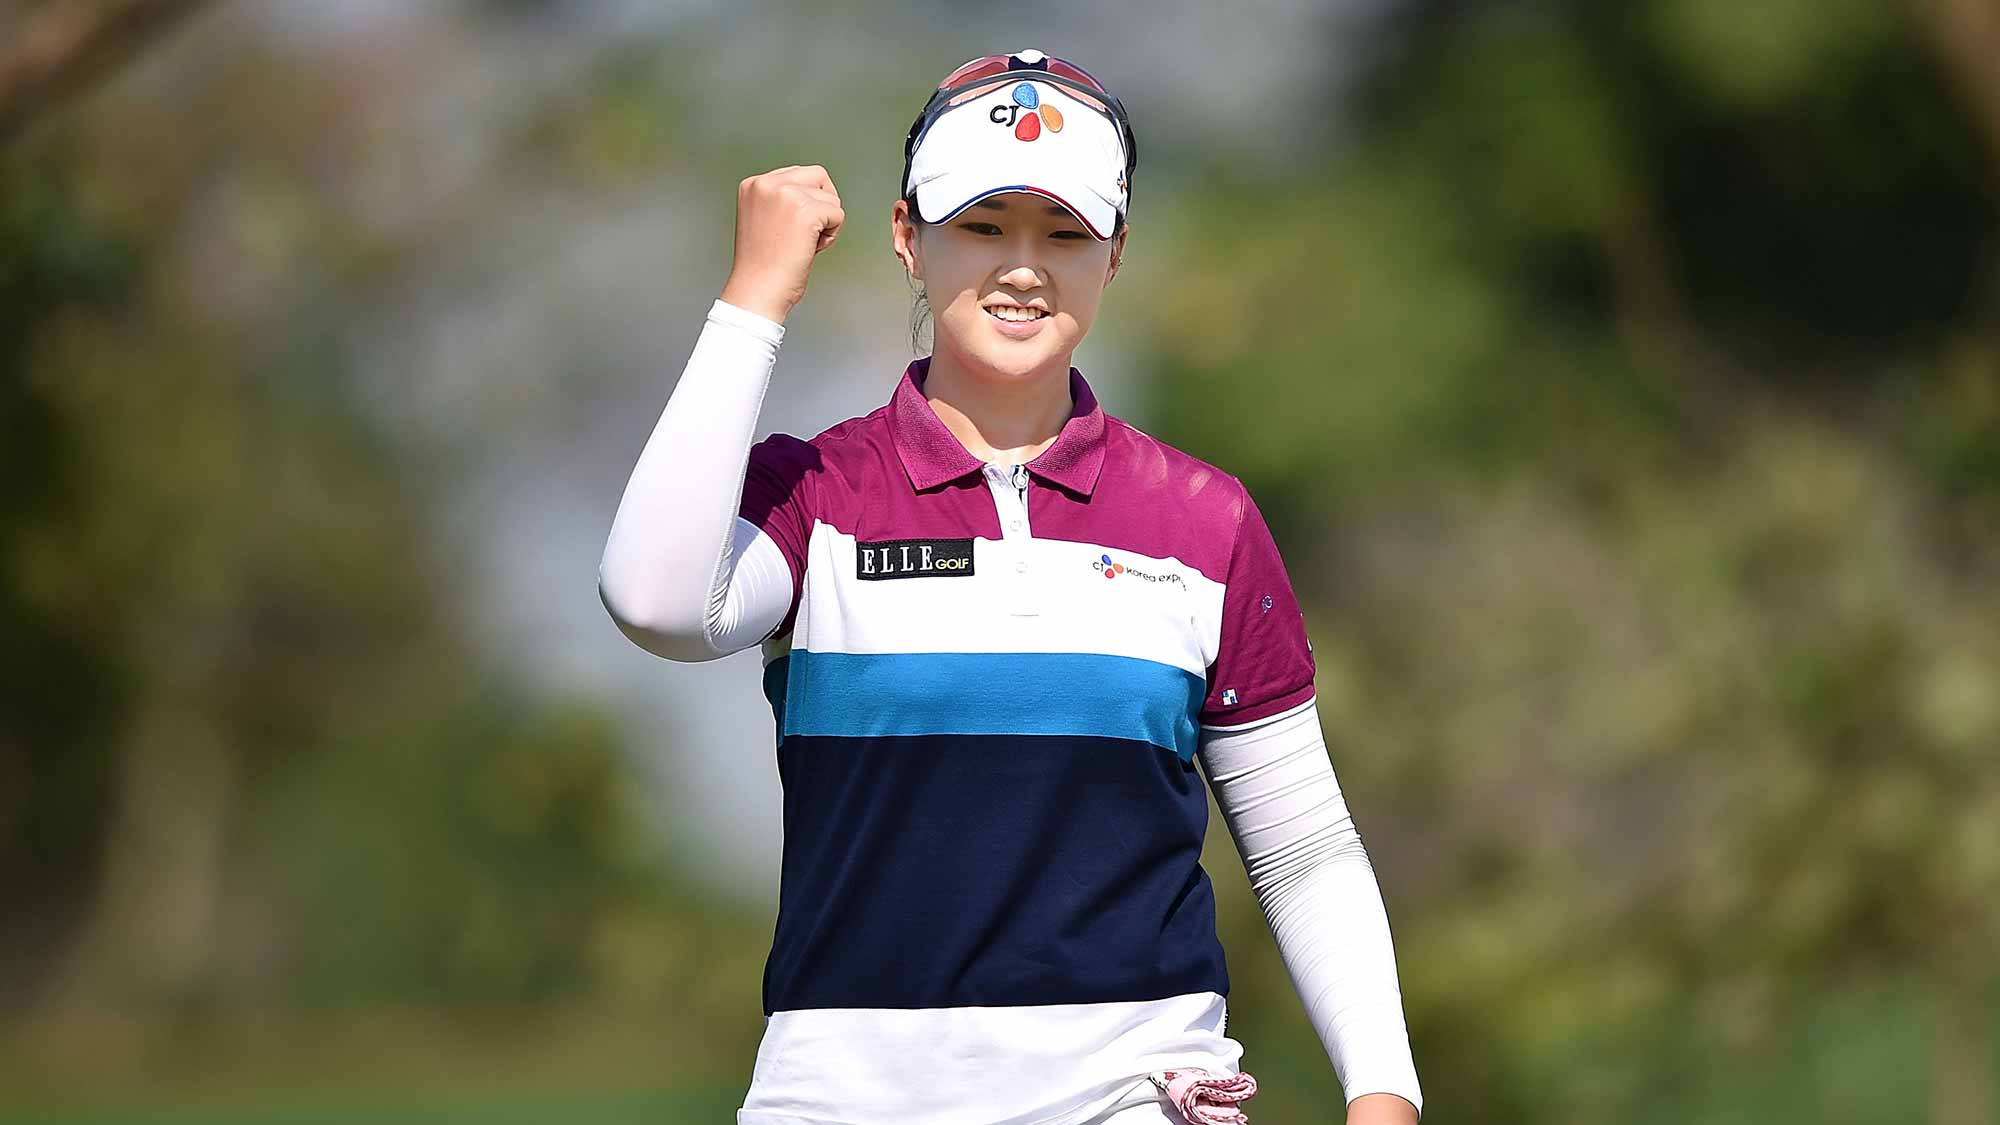 Q Baek of South Korea celebrates during day one of the 2016 Honda LPGA Thailand at Siam Country Club